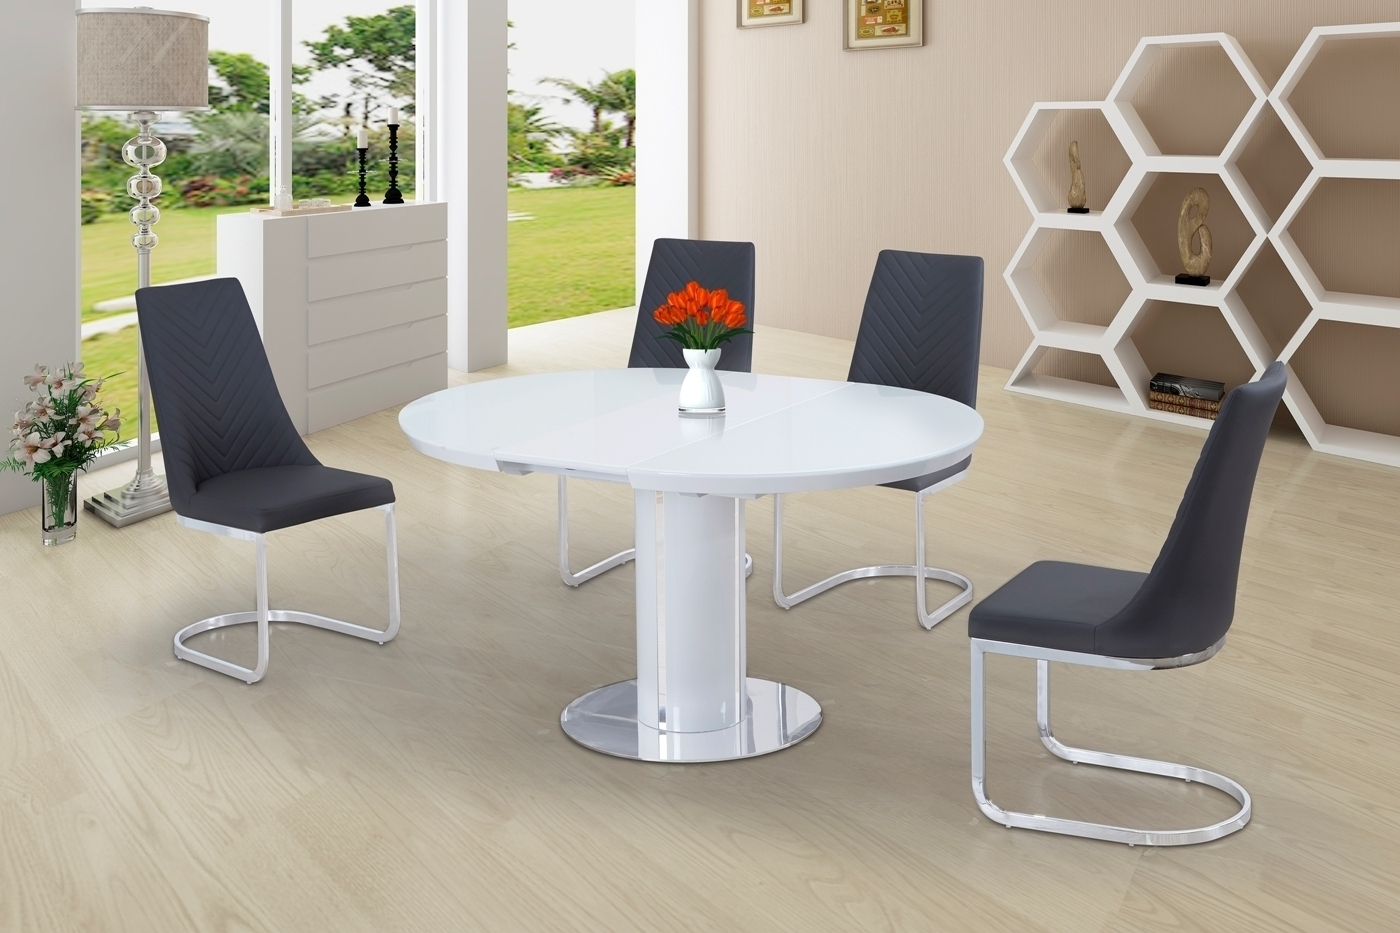 2018 White High Gloss Dining Tables 6 Chairs Throughout Round White Glass High Gloss Dining Table And 6 Grey Chairs (Gallery 2 of 25)